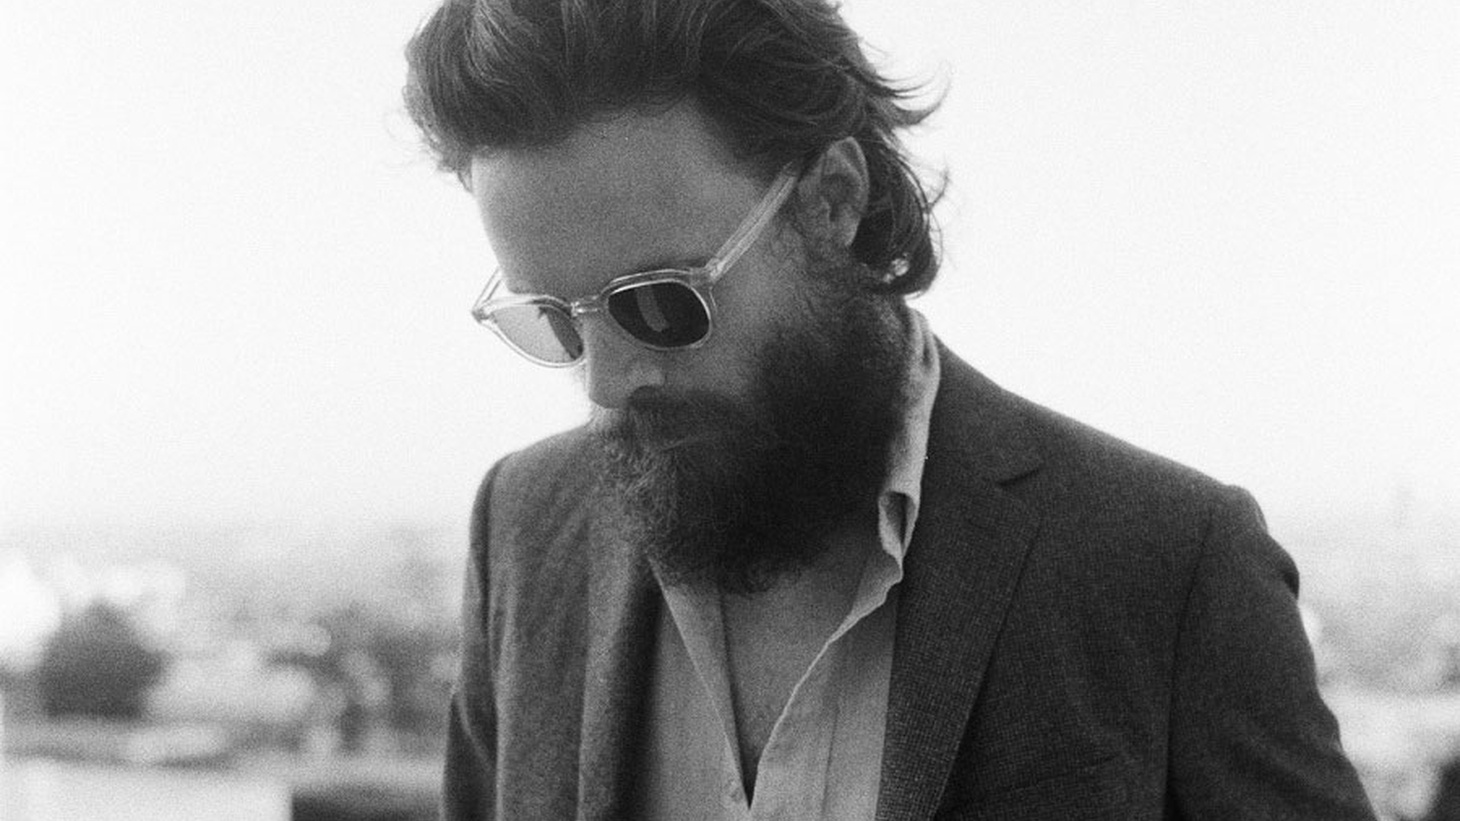 Father John Misty is an intriguing character created by J Tillman. He took the music world by storm with his 2012 debut.